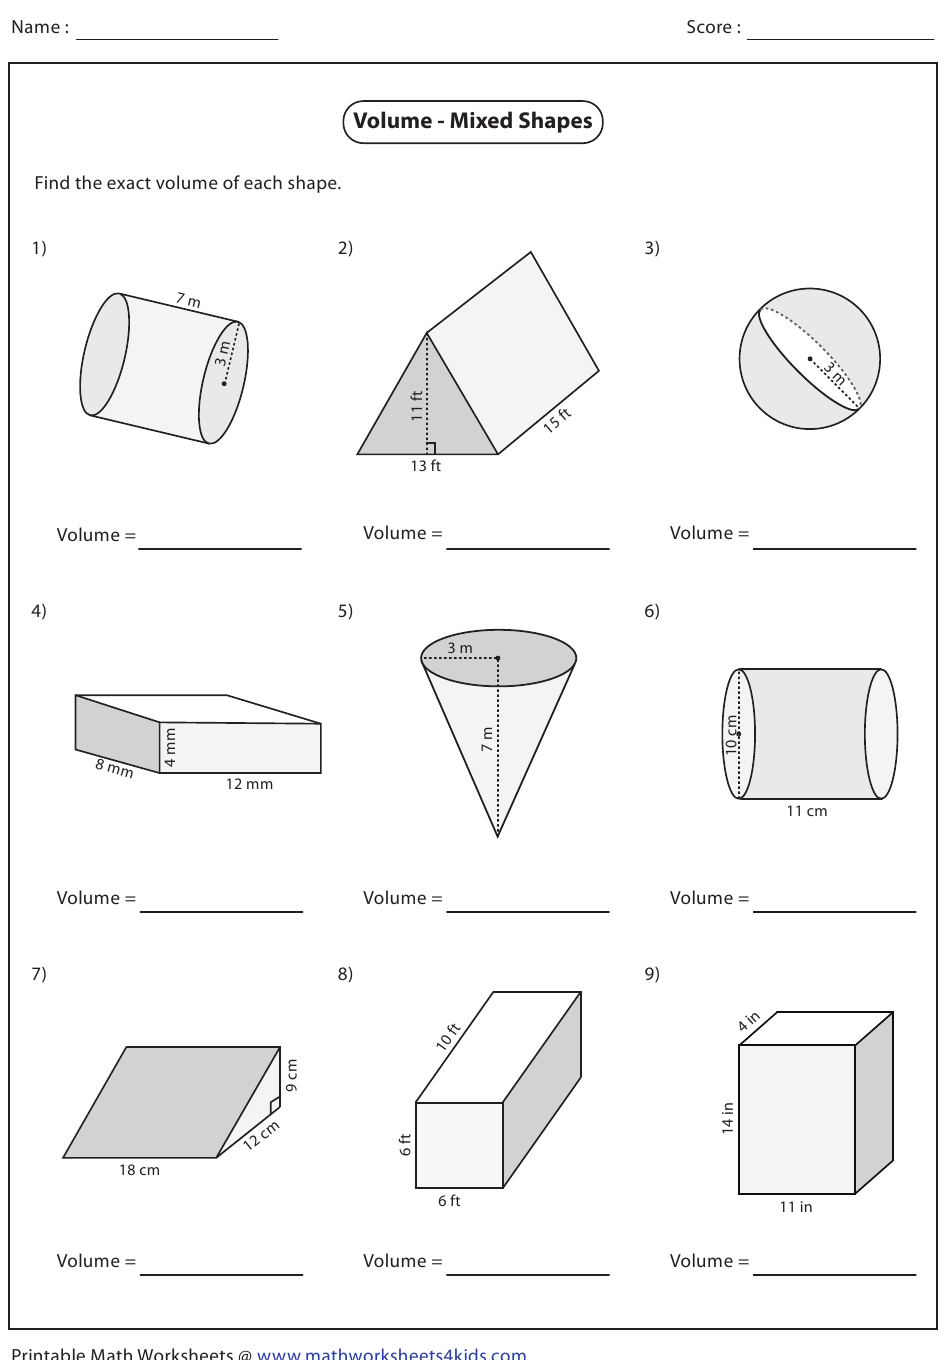 Volume - Mixed Shapes Worksheet With Answers Download ...